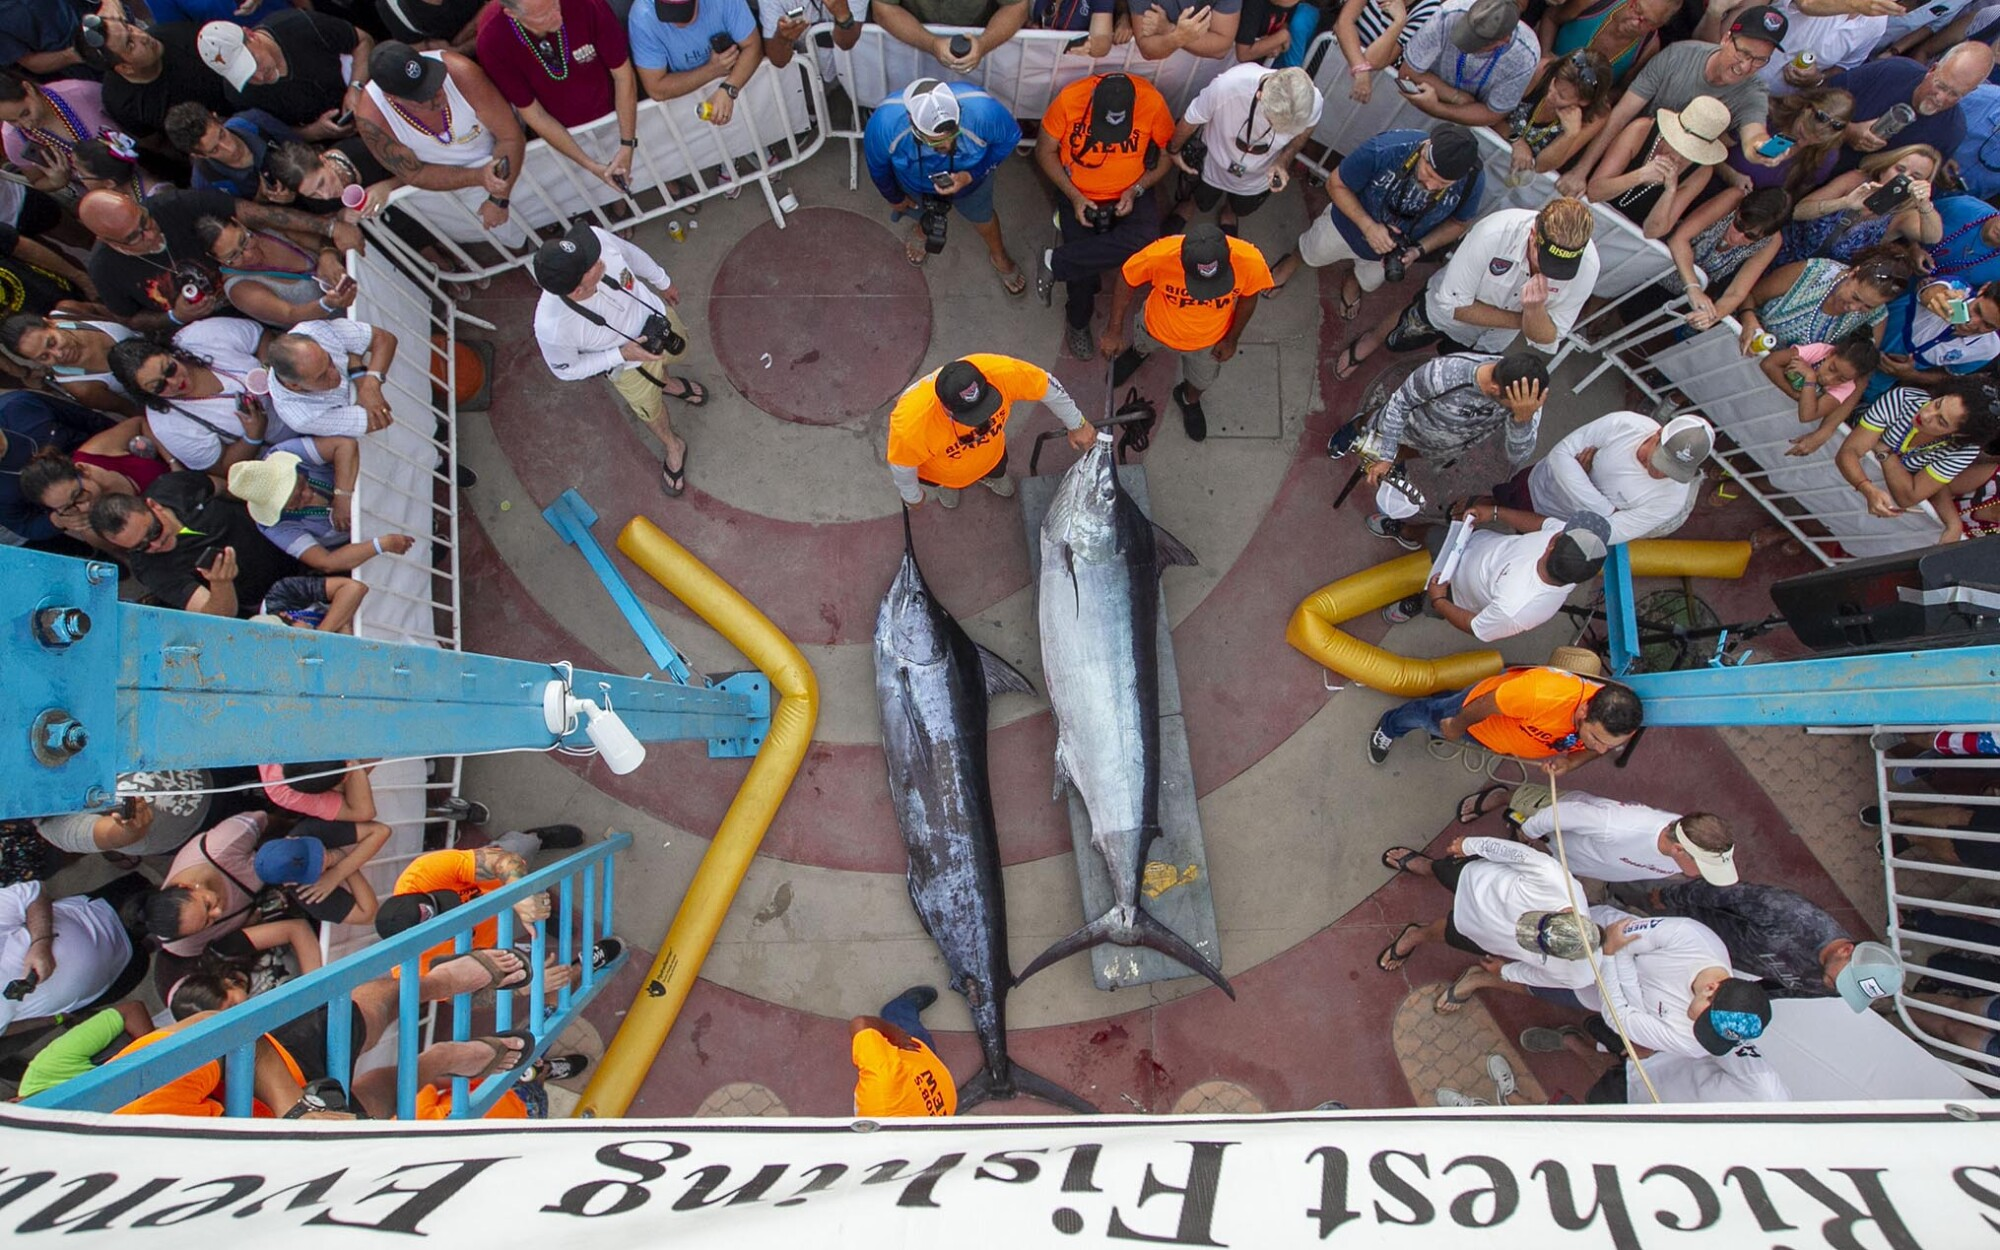 Stella June captain Evan Salvay, a part-time Point Loma resident, returned to the Bisbee's Black and Blue marlin tournament a year after winning $3 million in 2018.